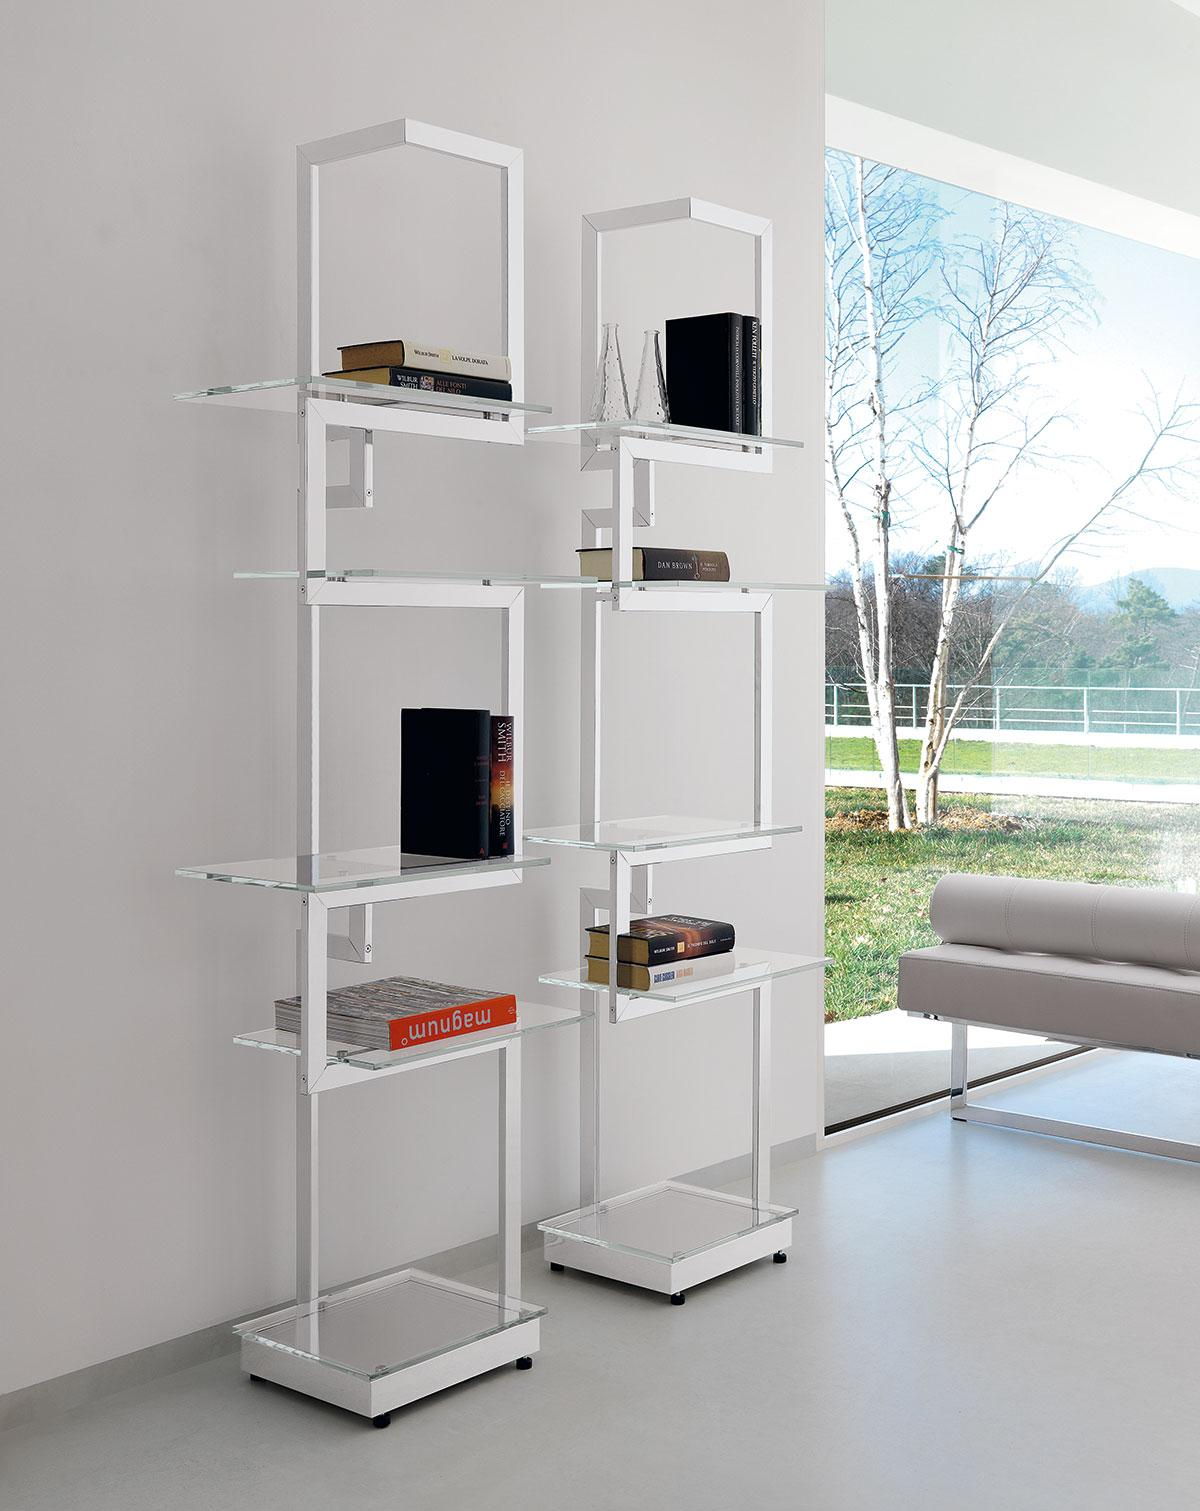 heritage metal and glass luxury bookcase shop online italy dream design. Black Bedroom Furniture Sets. Home Design Ideas